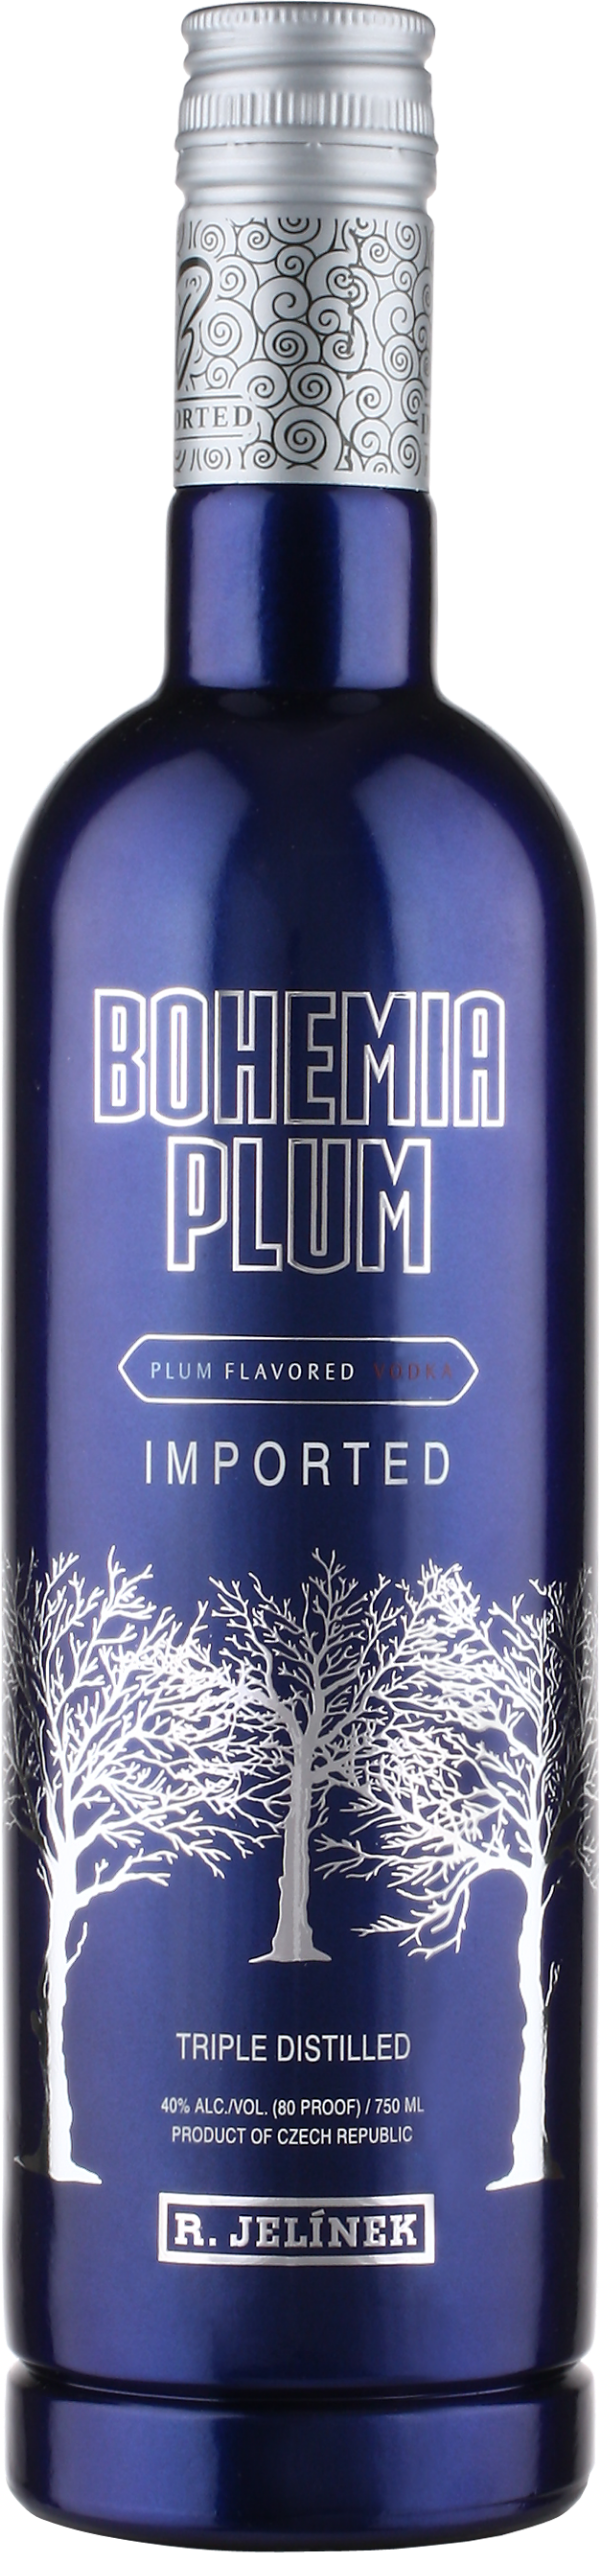 R. Jelinek Bohemia Plum Flavored Vodka